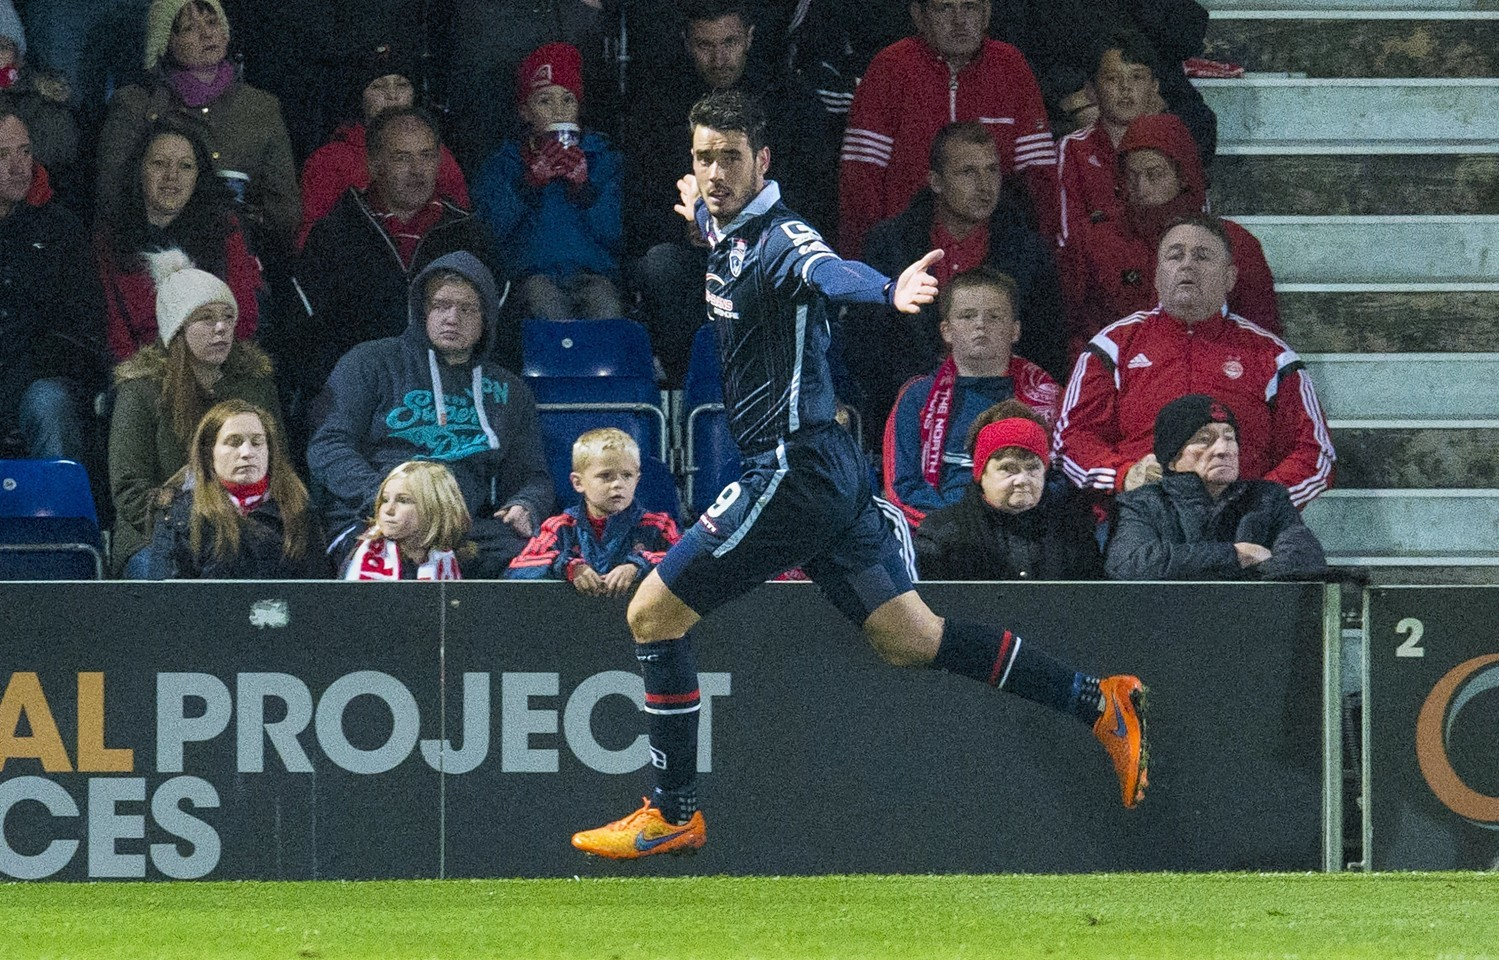 Brian Graham netted 17 goals in 36 appearances during his first spell with Ross County.